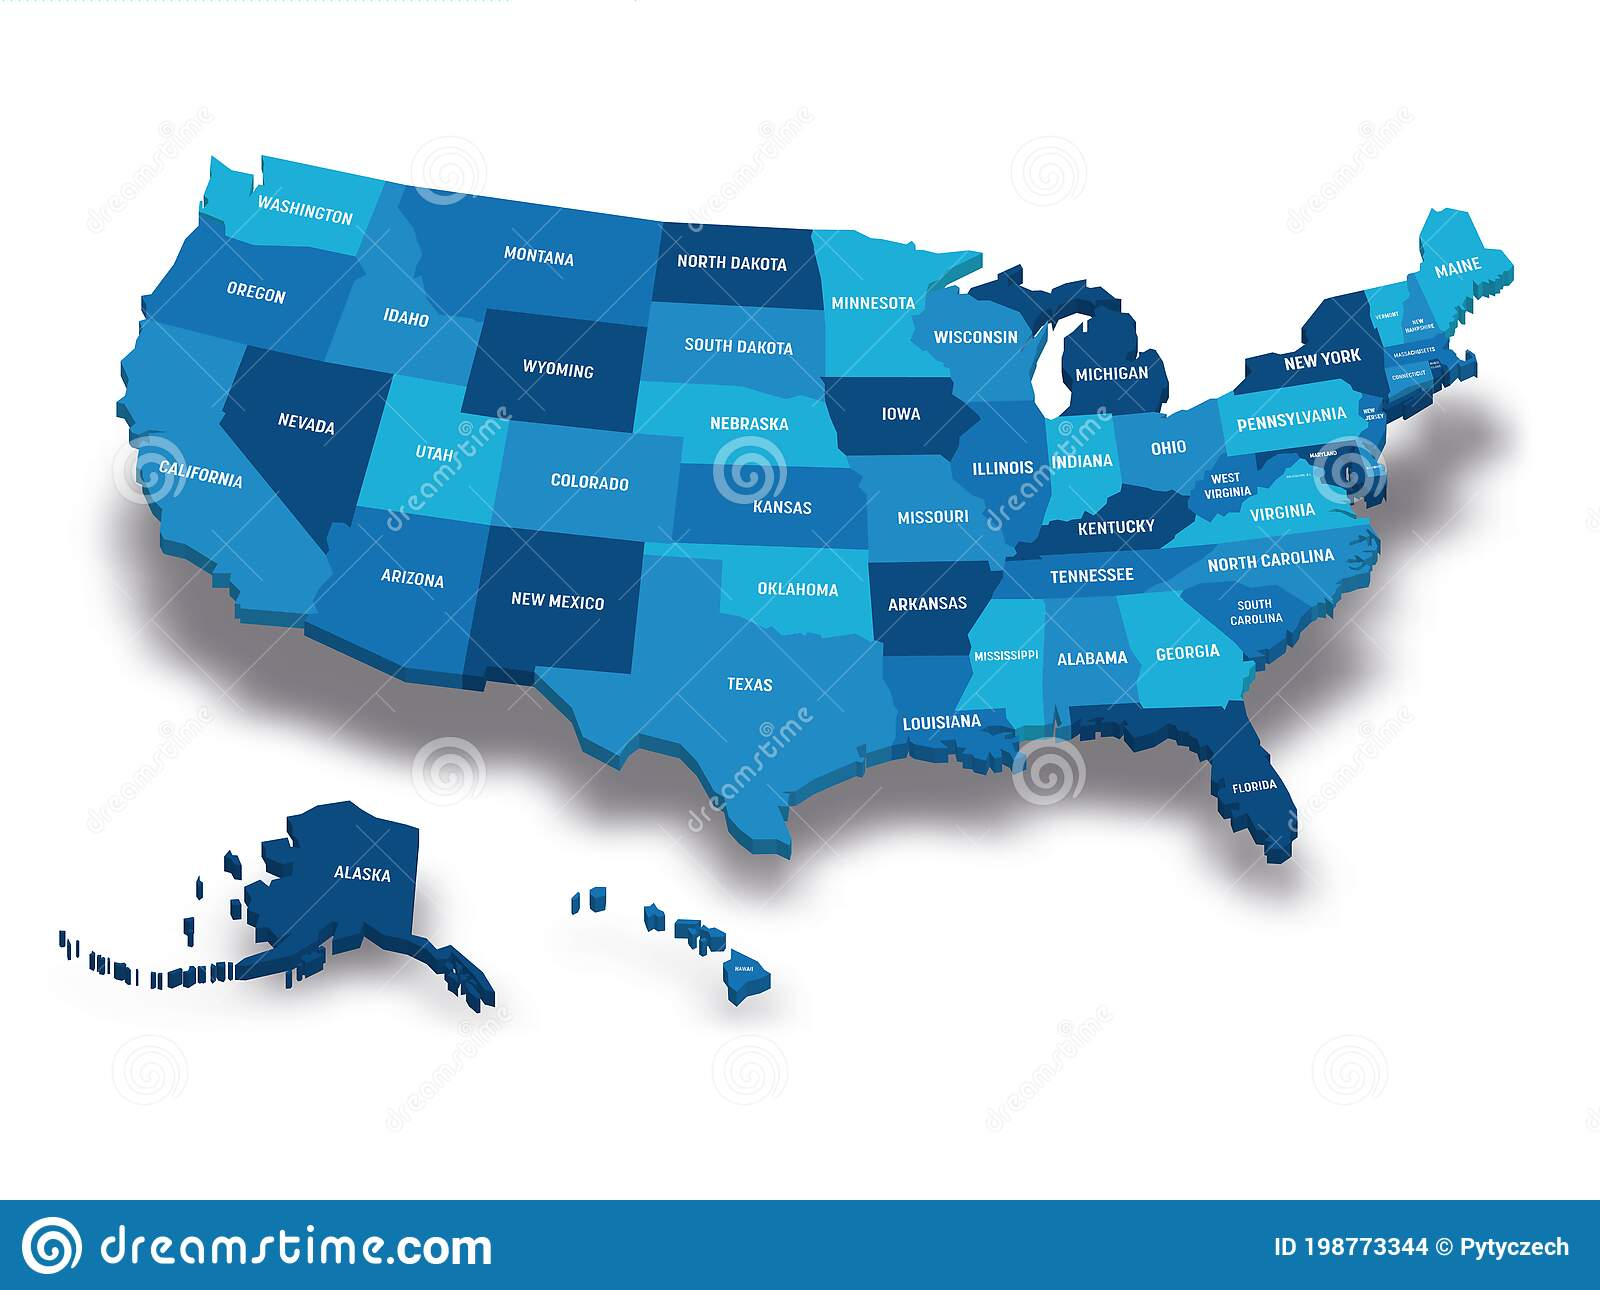 Picture of: State Abbreviations Stock Illustrations 51 State Abbreviations Stock Illustrations Vectors Clipart Dreamstime